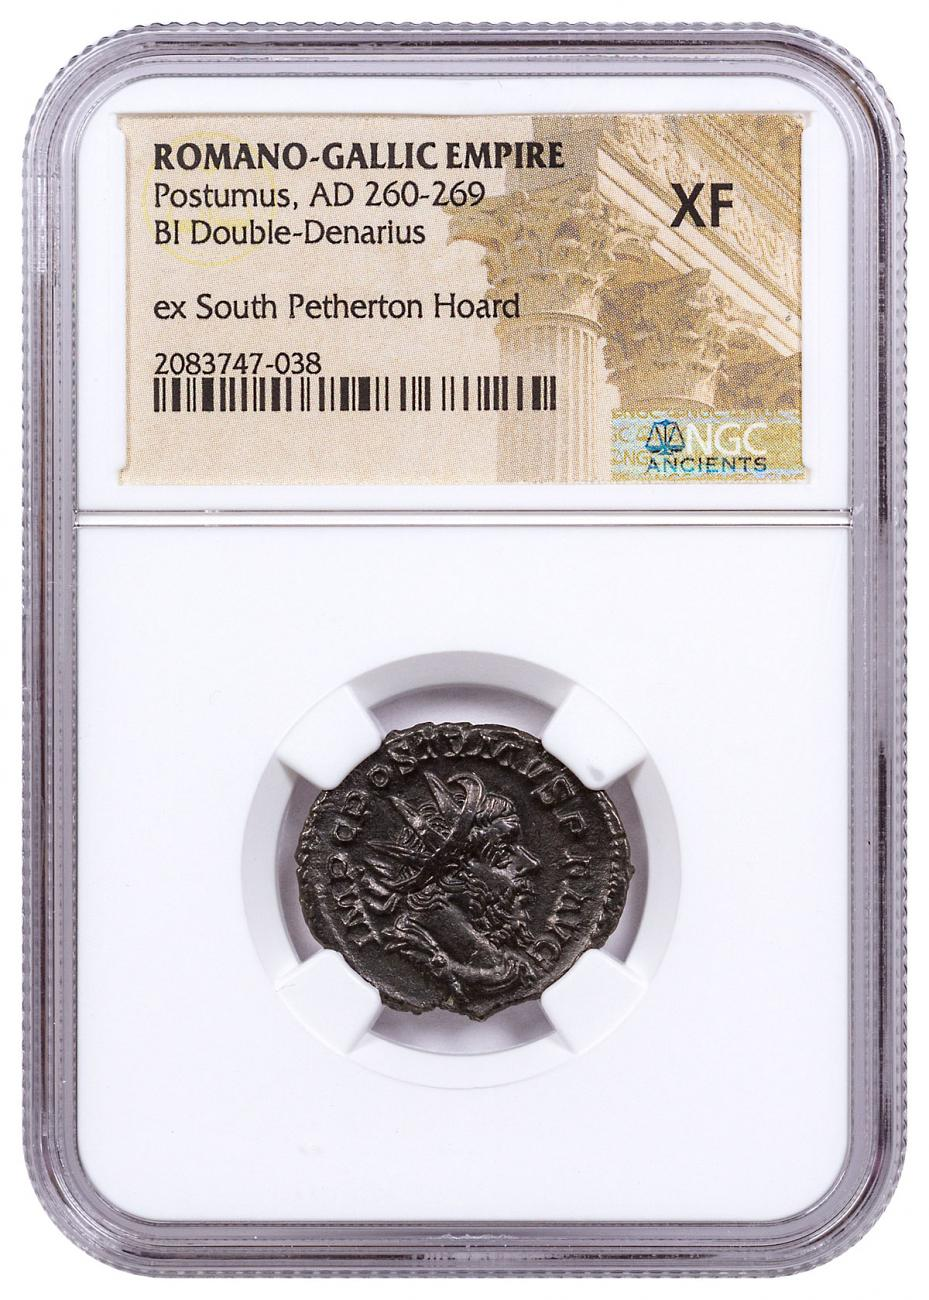 Romano-Gallic Empire, Billon Double Denarius of Posthumus (AD 260-269) NGC XF - South Petherton Hoard